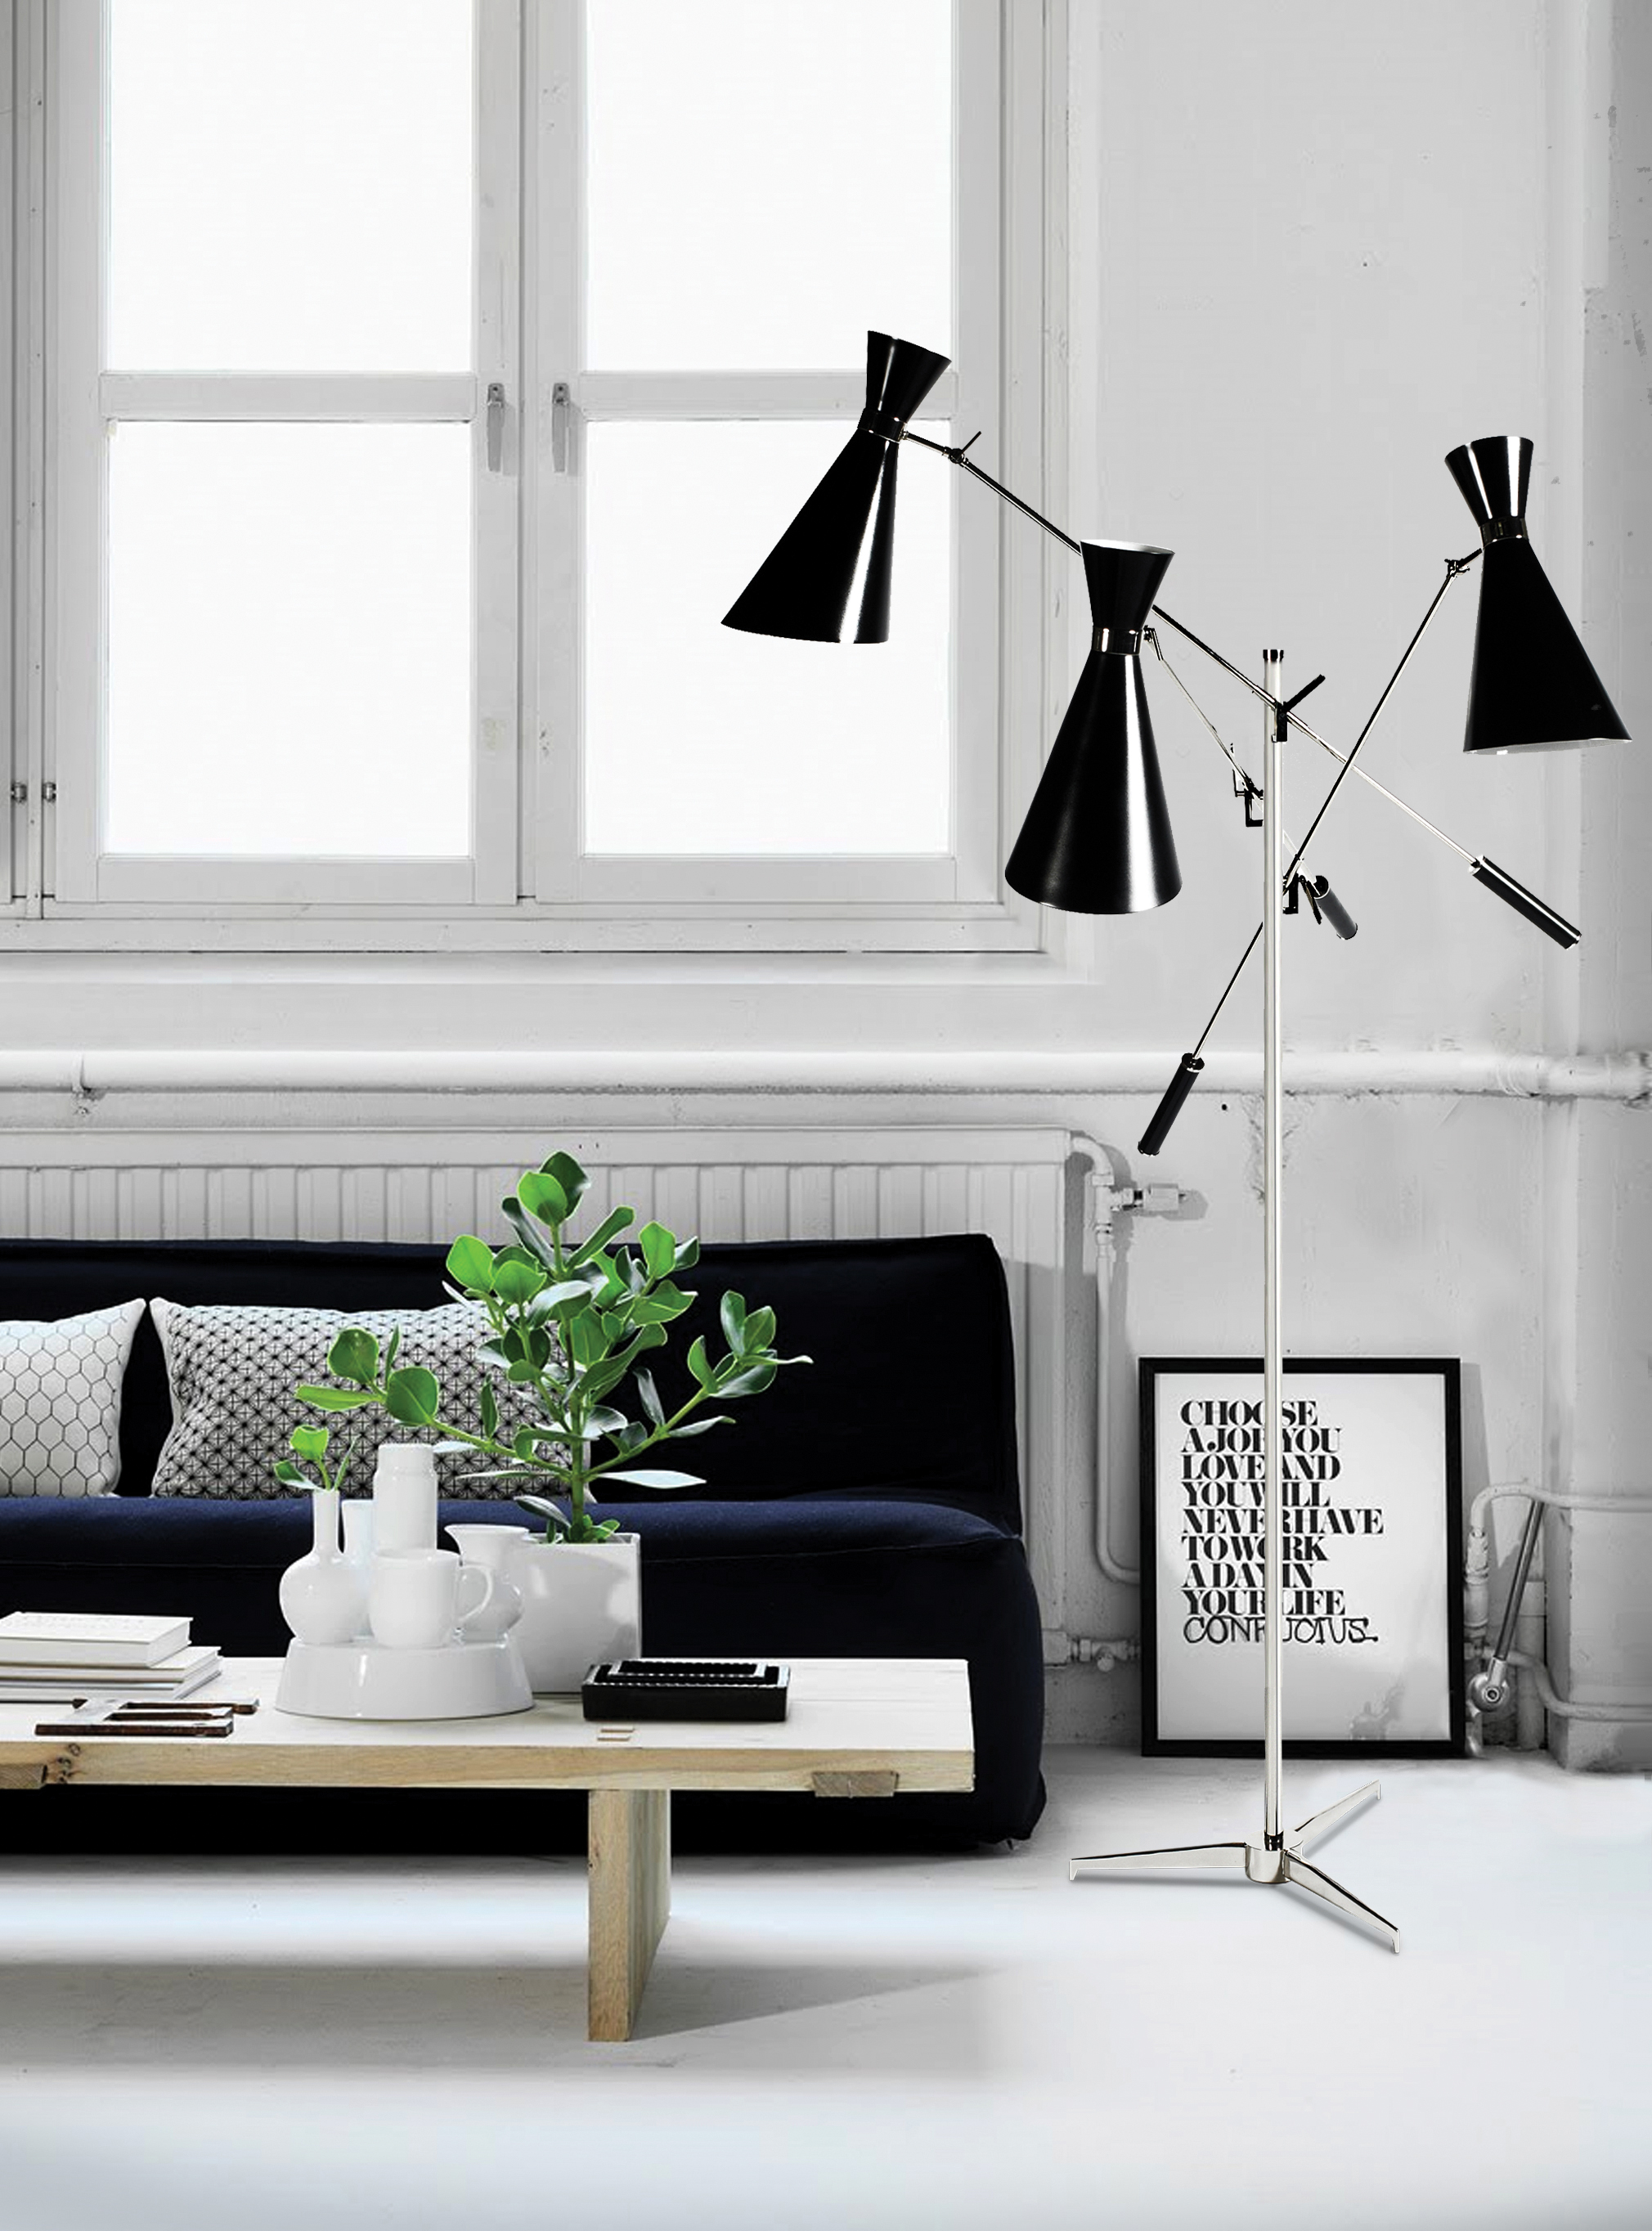 Modern Floor Lamps to Brighten Up Your Home Decor modern floor lamps Modern Floor Lamps to Brighten Up Your Home Decor Modern Floor Lamps to Brighten Up Your Home Decor 1